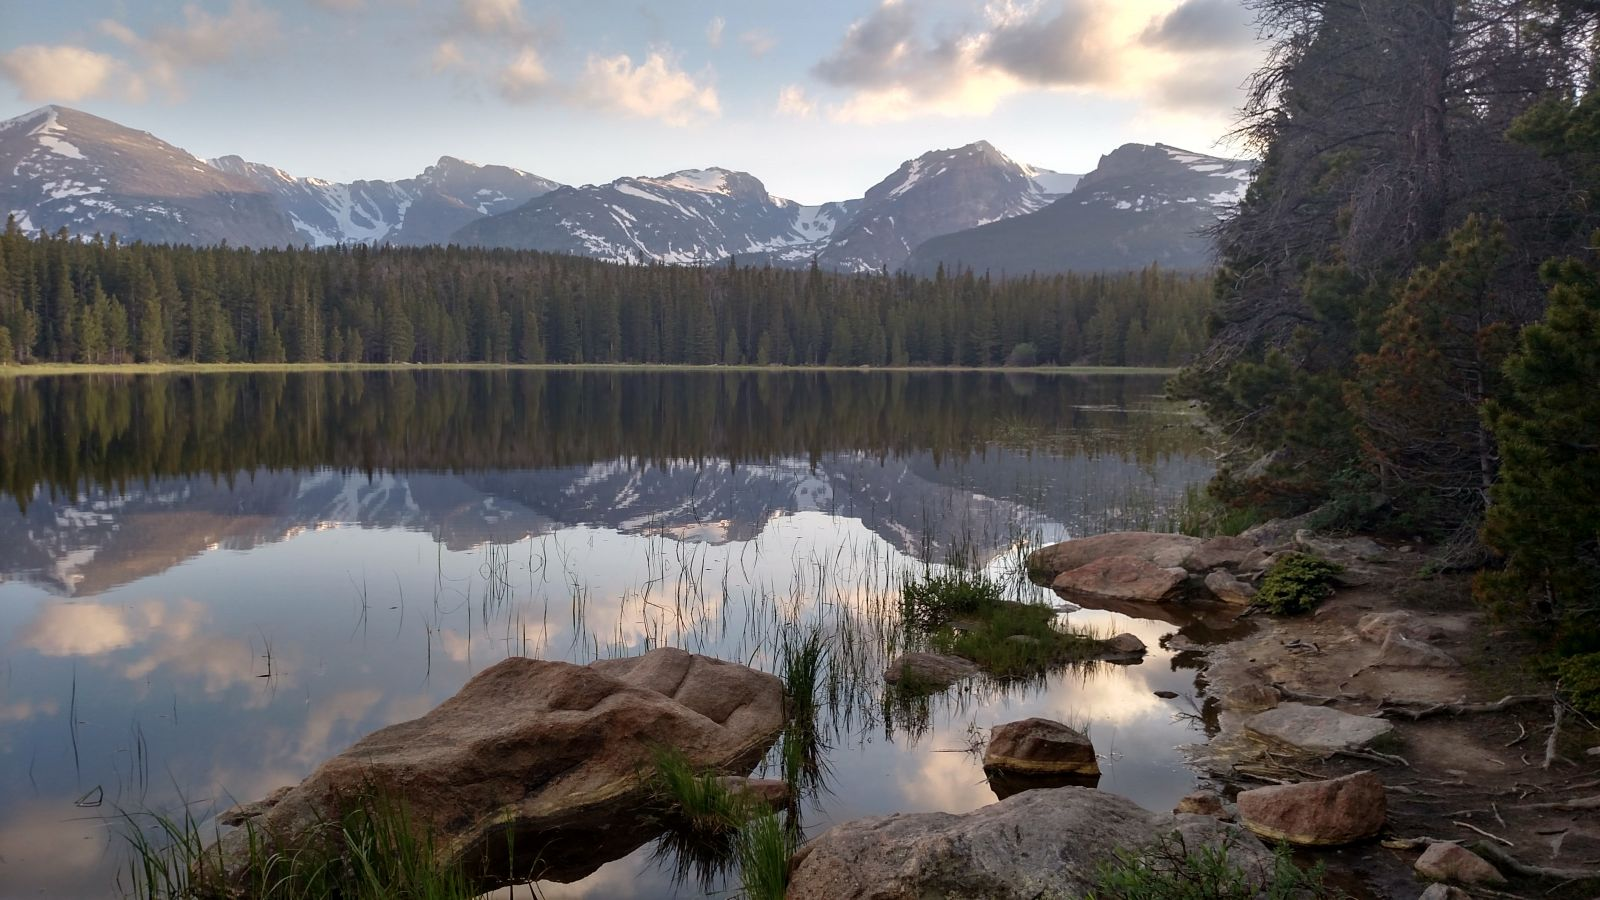 Estes Park RENTALS, Estes Park Listings,Jim Idler REALTOR, CARRIAGE HILLS LISTINGS,Jim REALTOR Estes Park Real Estate